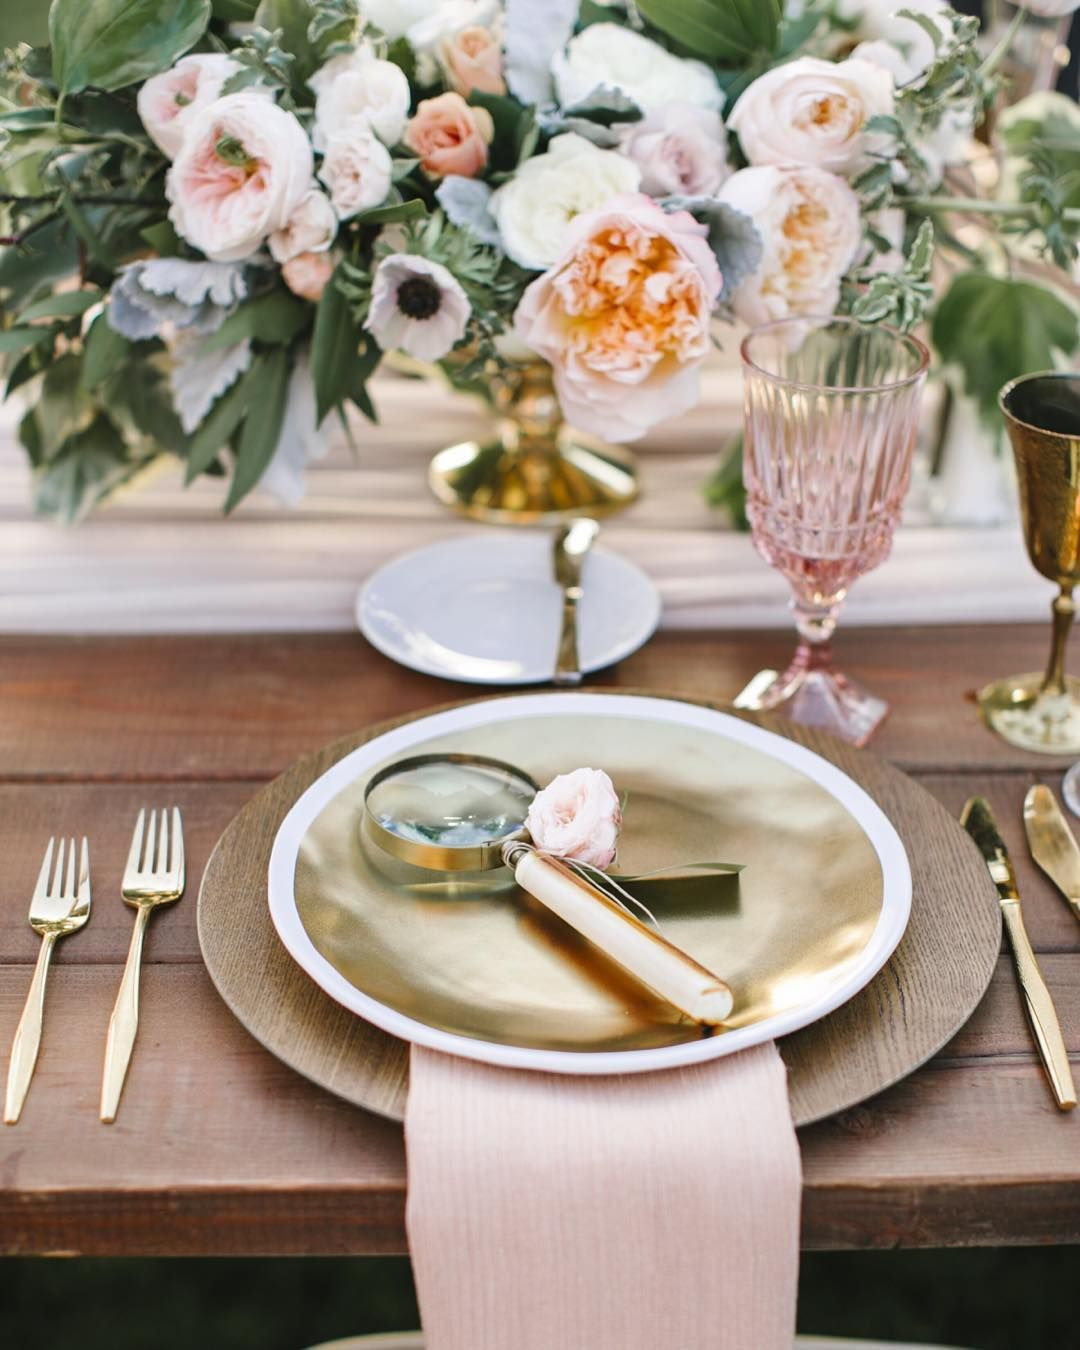 There is an extra sweet story behind this beautiful tabletop! When our bride lost her engagement ring (an heirloom from her grandmother) during a day at the beach her fiancé searched the sand until sunset finally finding it to bring home to her. Magnifying glasses at each place setting were the perfect touch to symbolize this couples buried treasure story. -@amorology #WWDayinTheLife {Photo: @joshelliott; Florals: @oakandtheowl; Rentals: @hostesshaven} by weddingwire